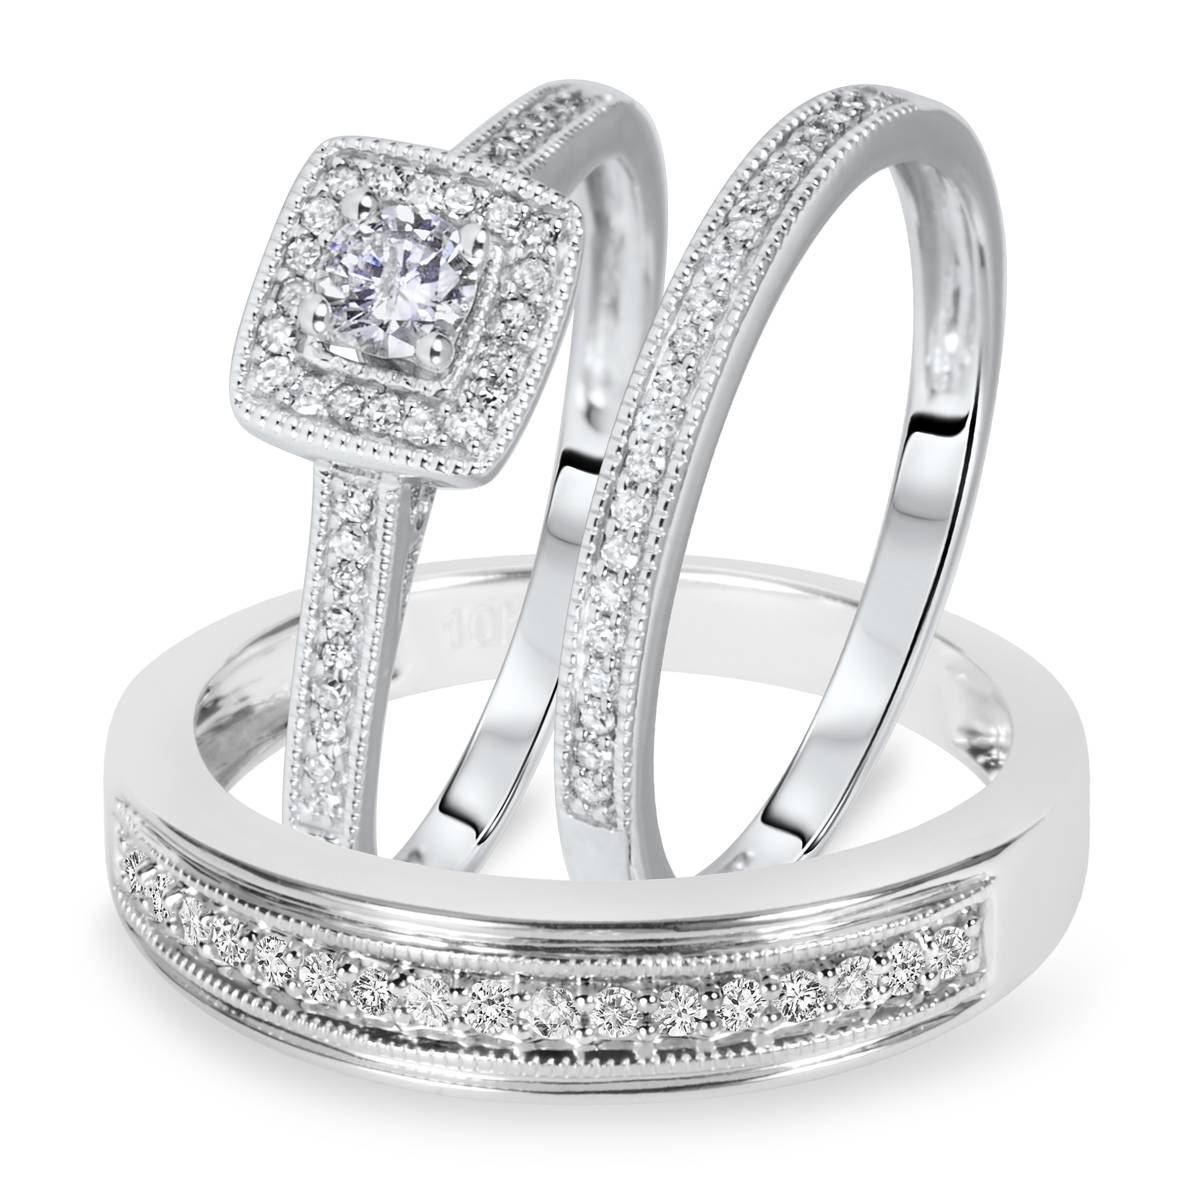 Trio Wedding Ring Set 14k White Gold My Trio Rings Bt572w14k In White Gold Wedding Rings Sets (View 11 of 15)